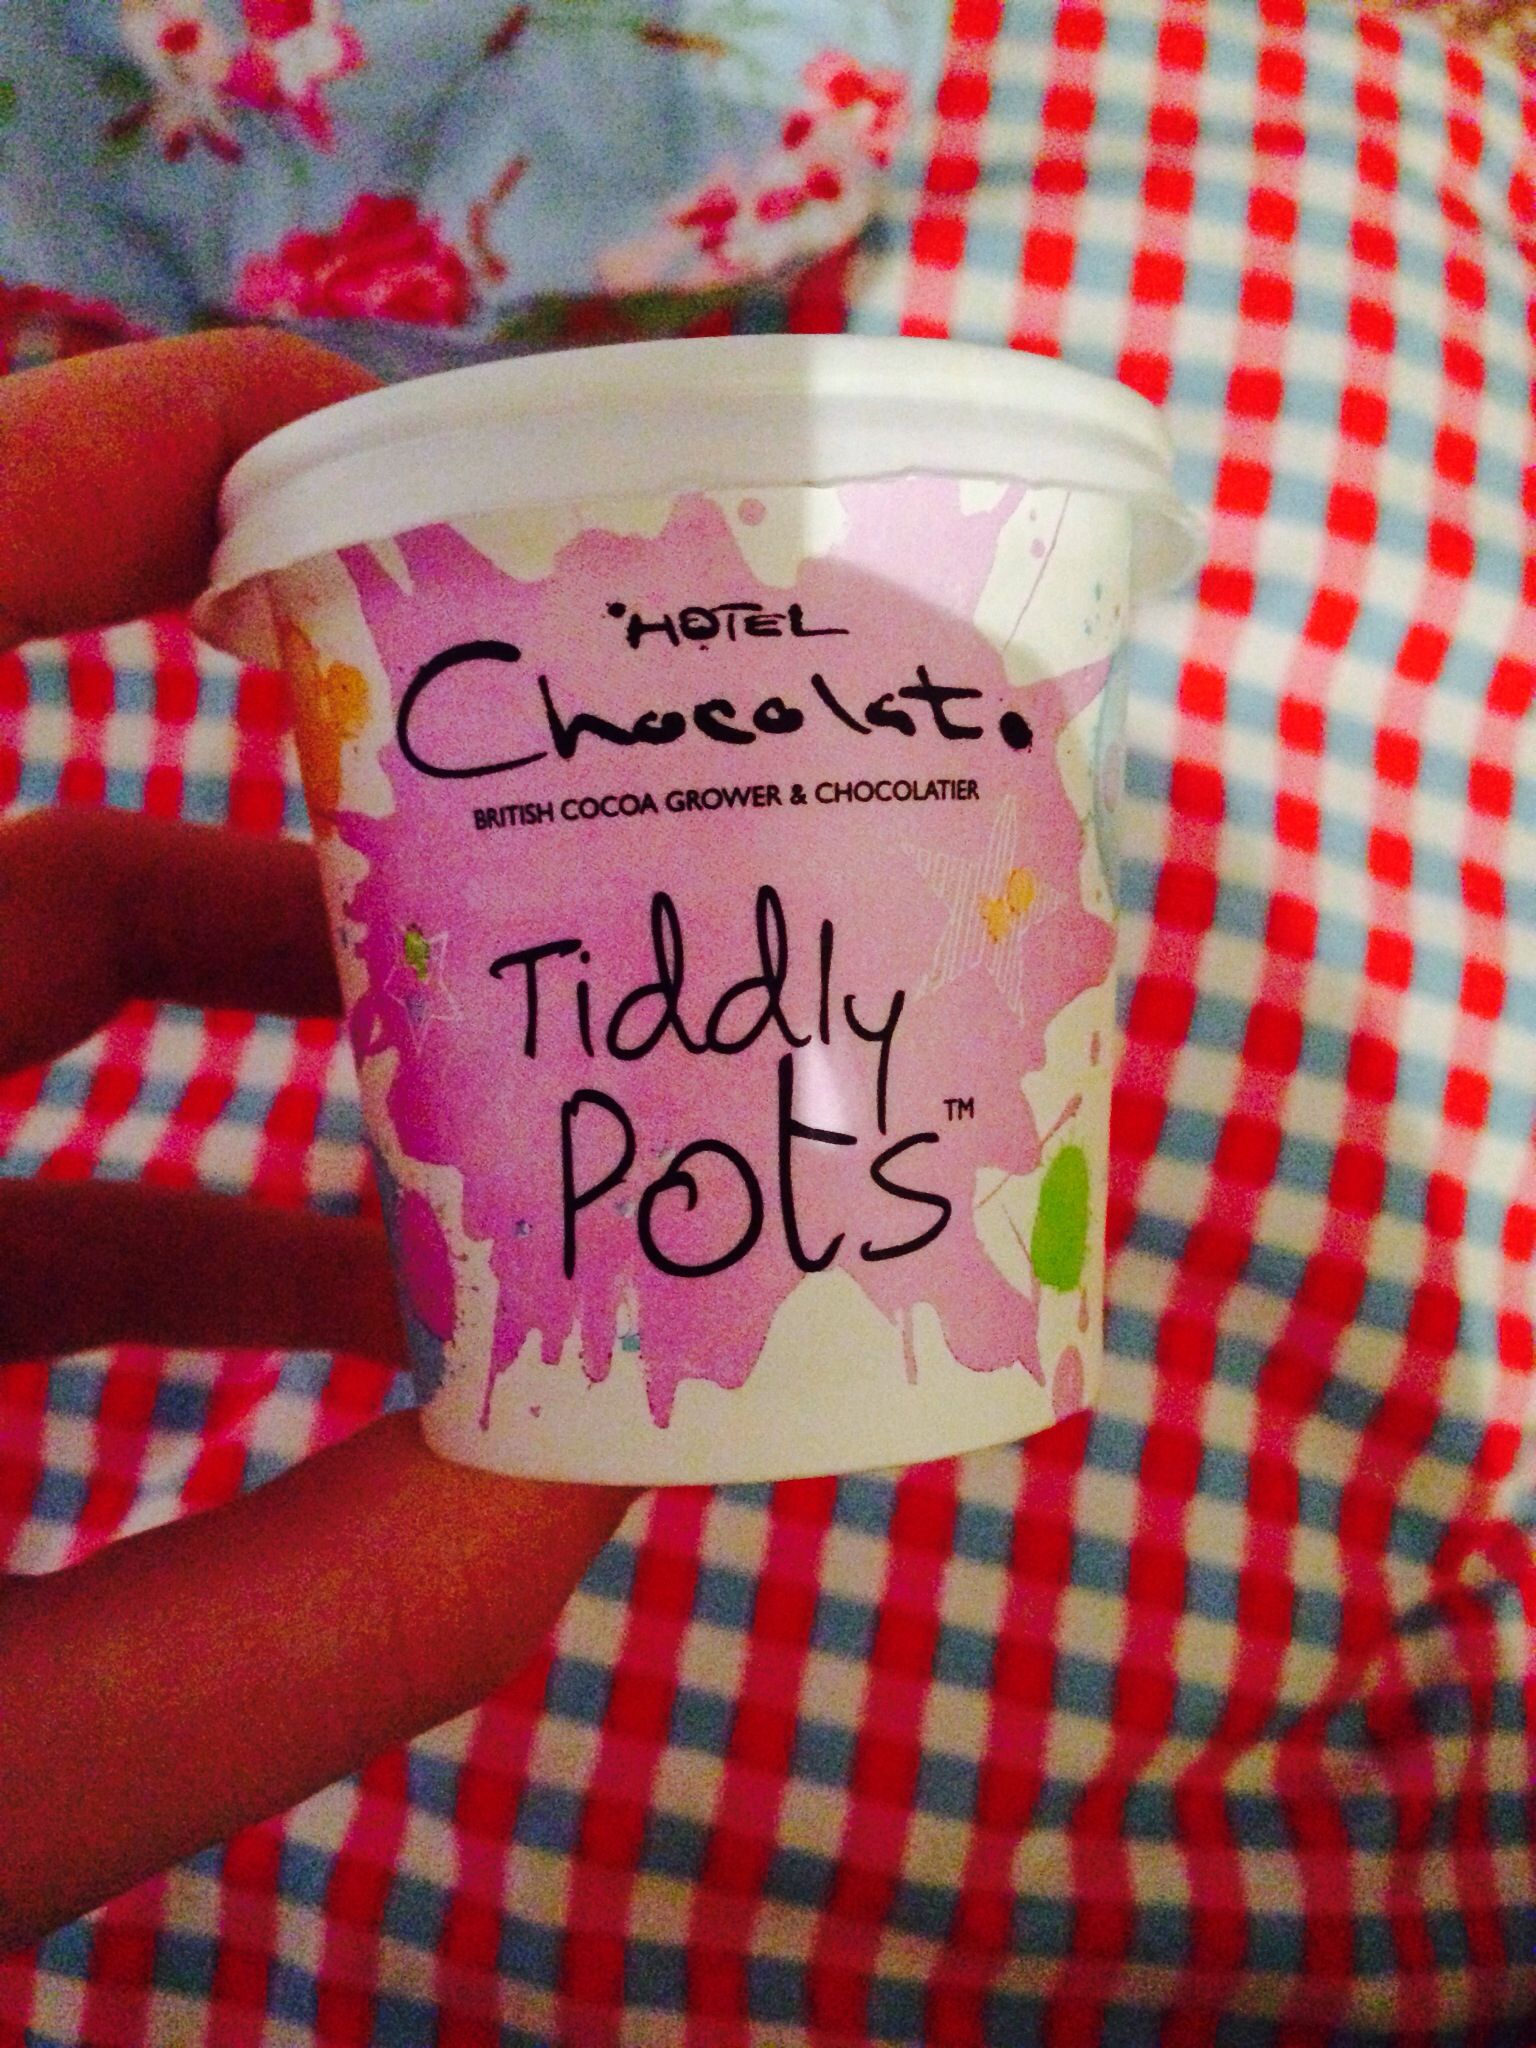 Tiddly pots #hotelchocolat